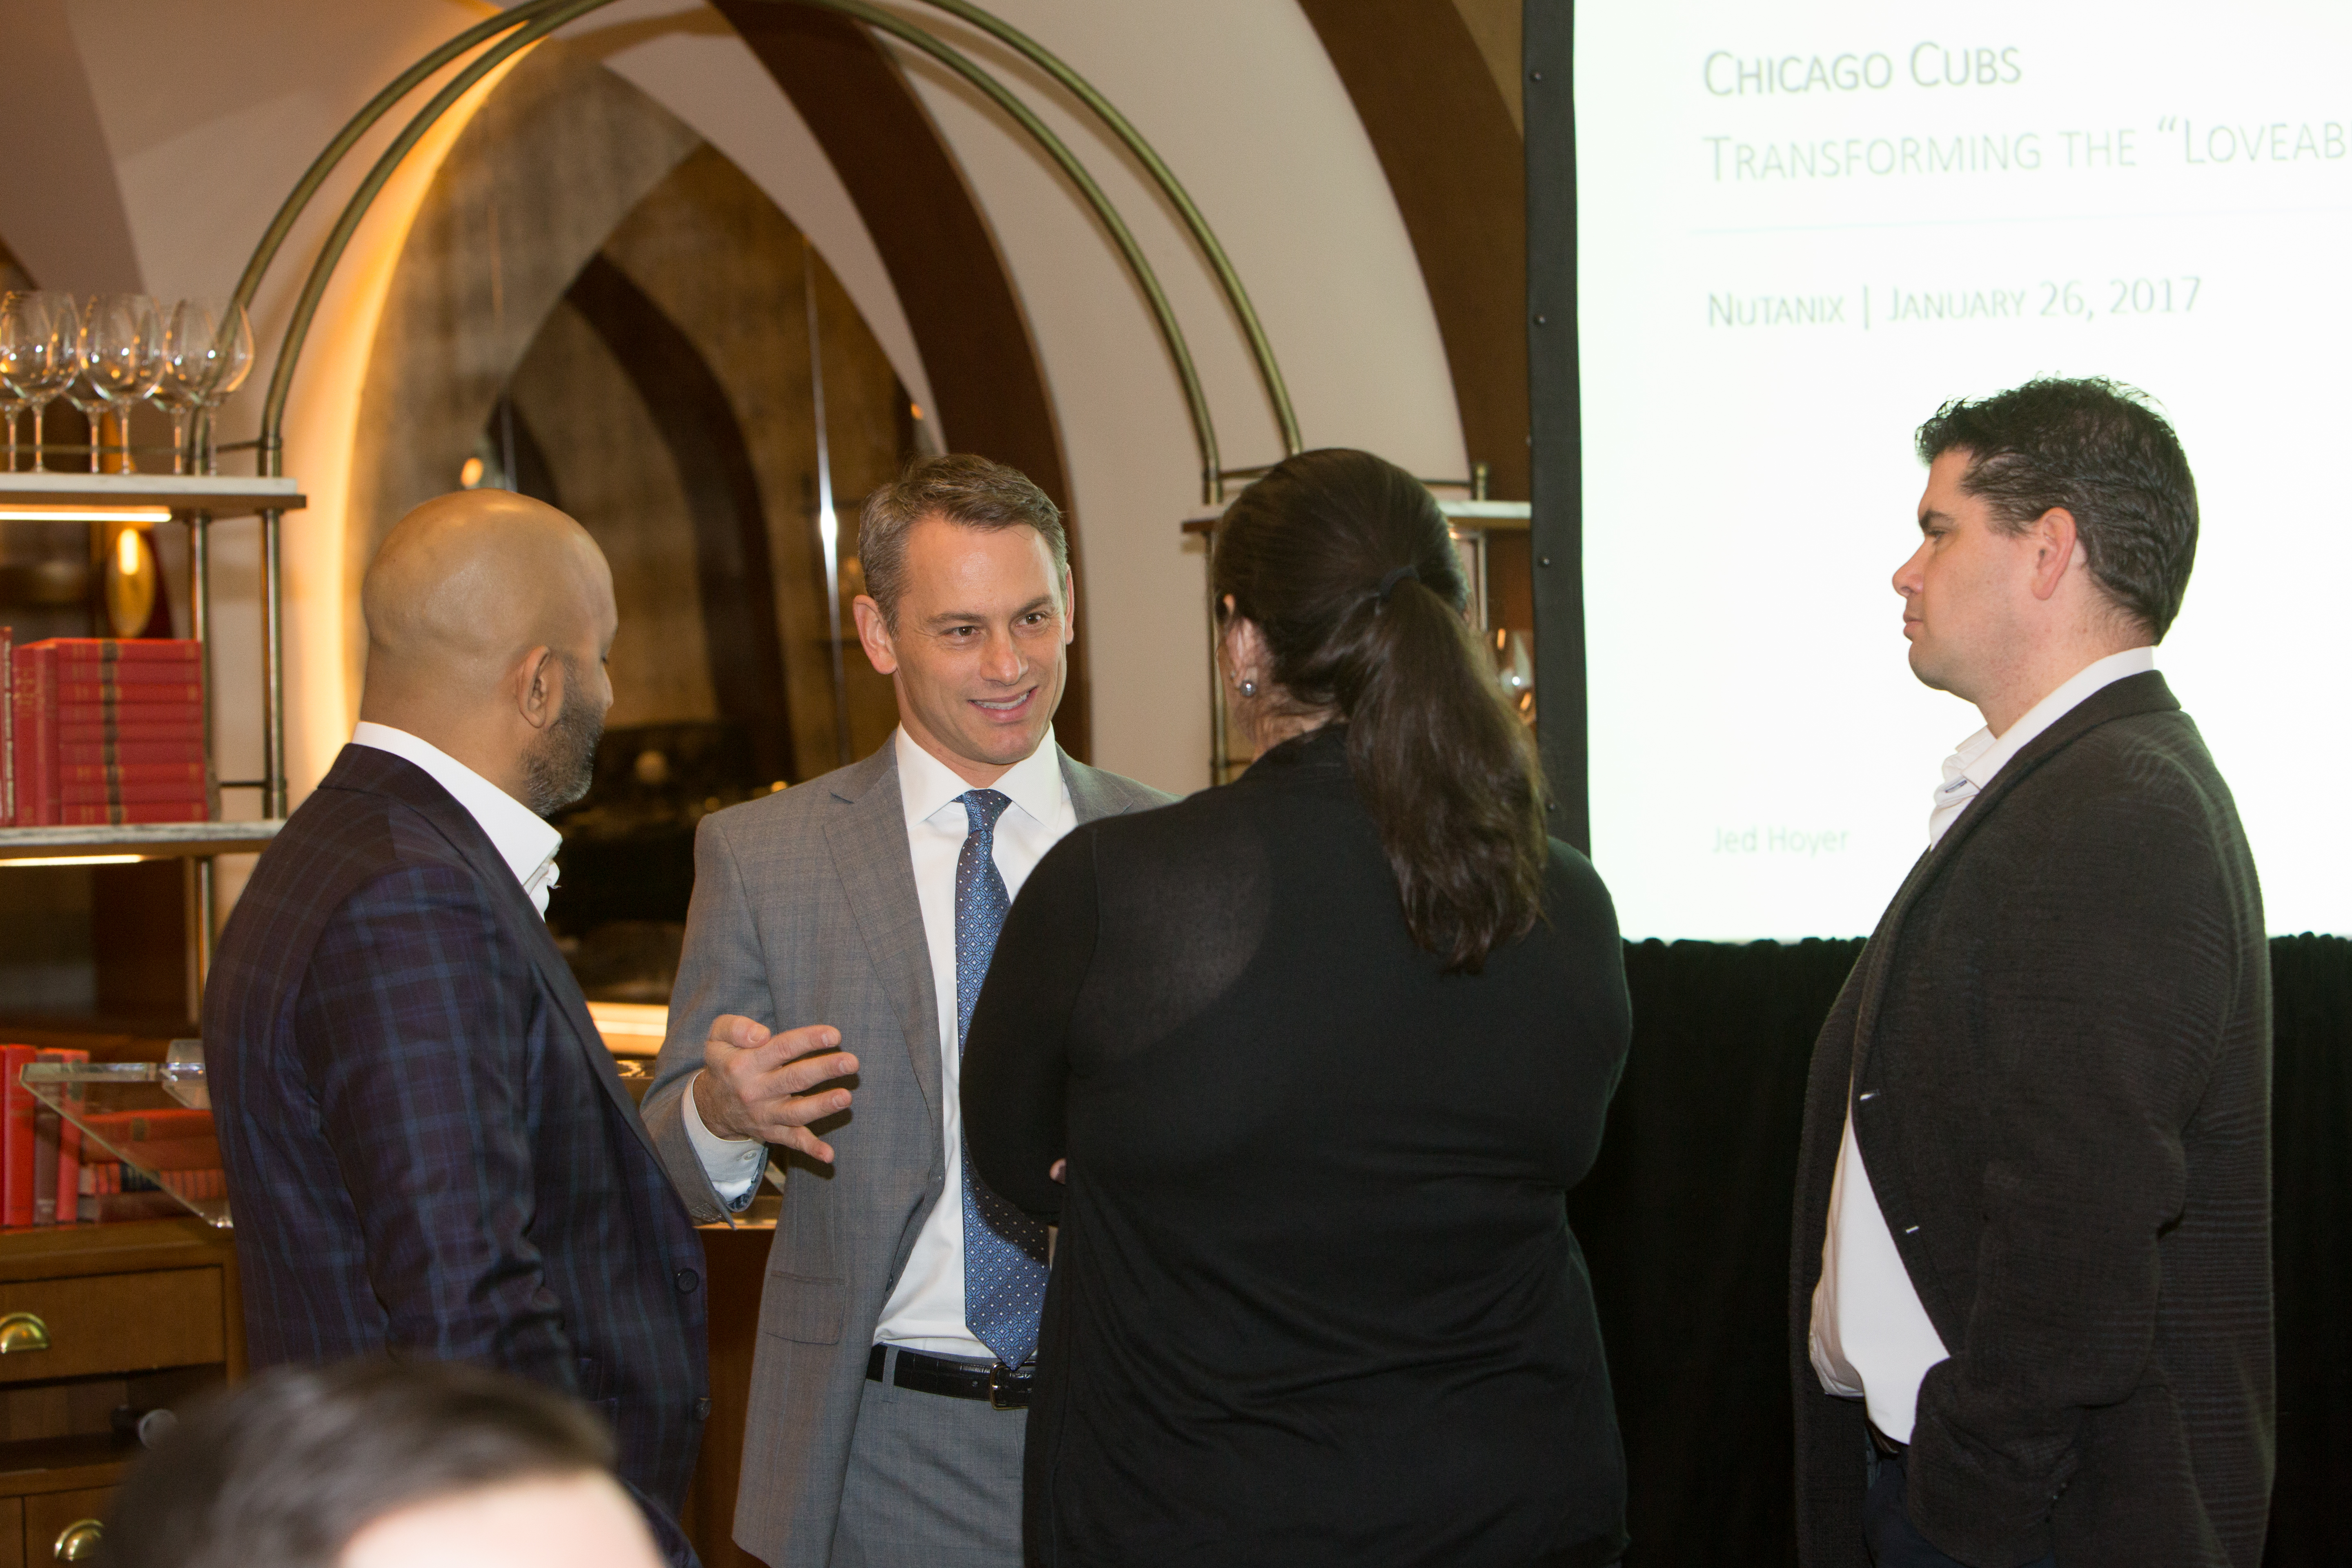 Nutanix & CDW Luncheon - Sheri Whitko Photography